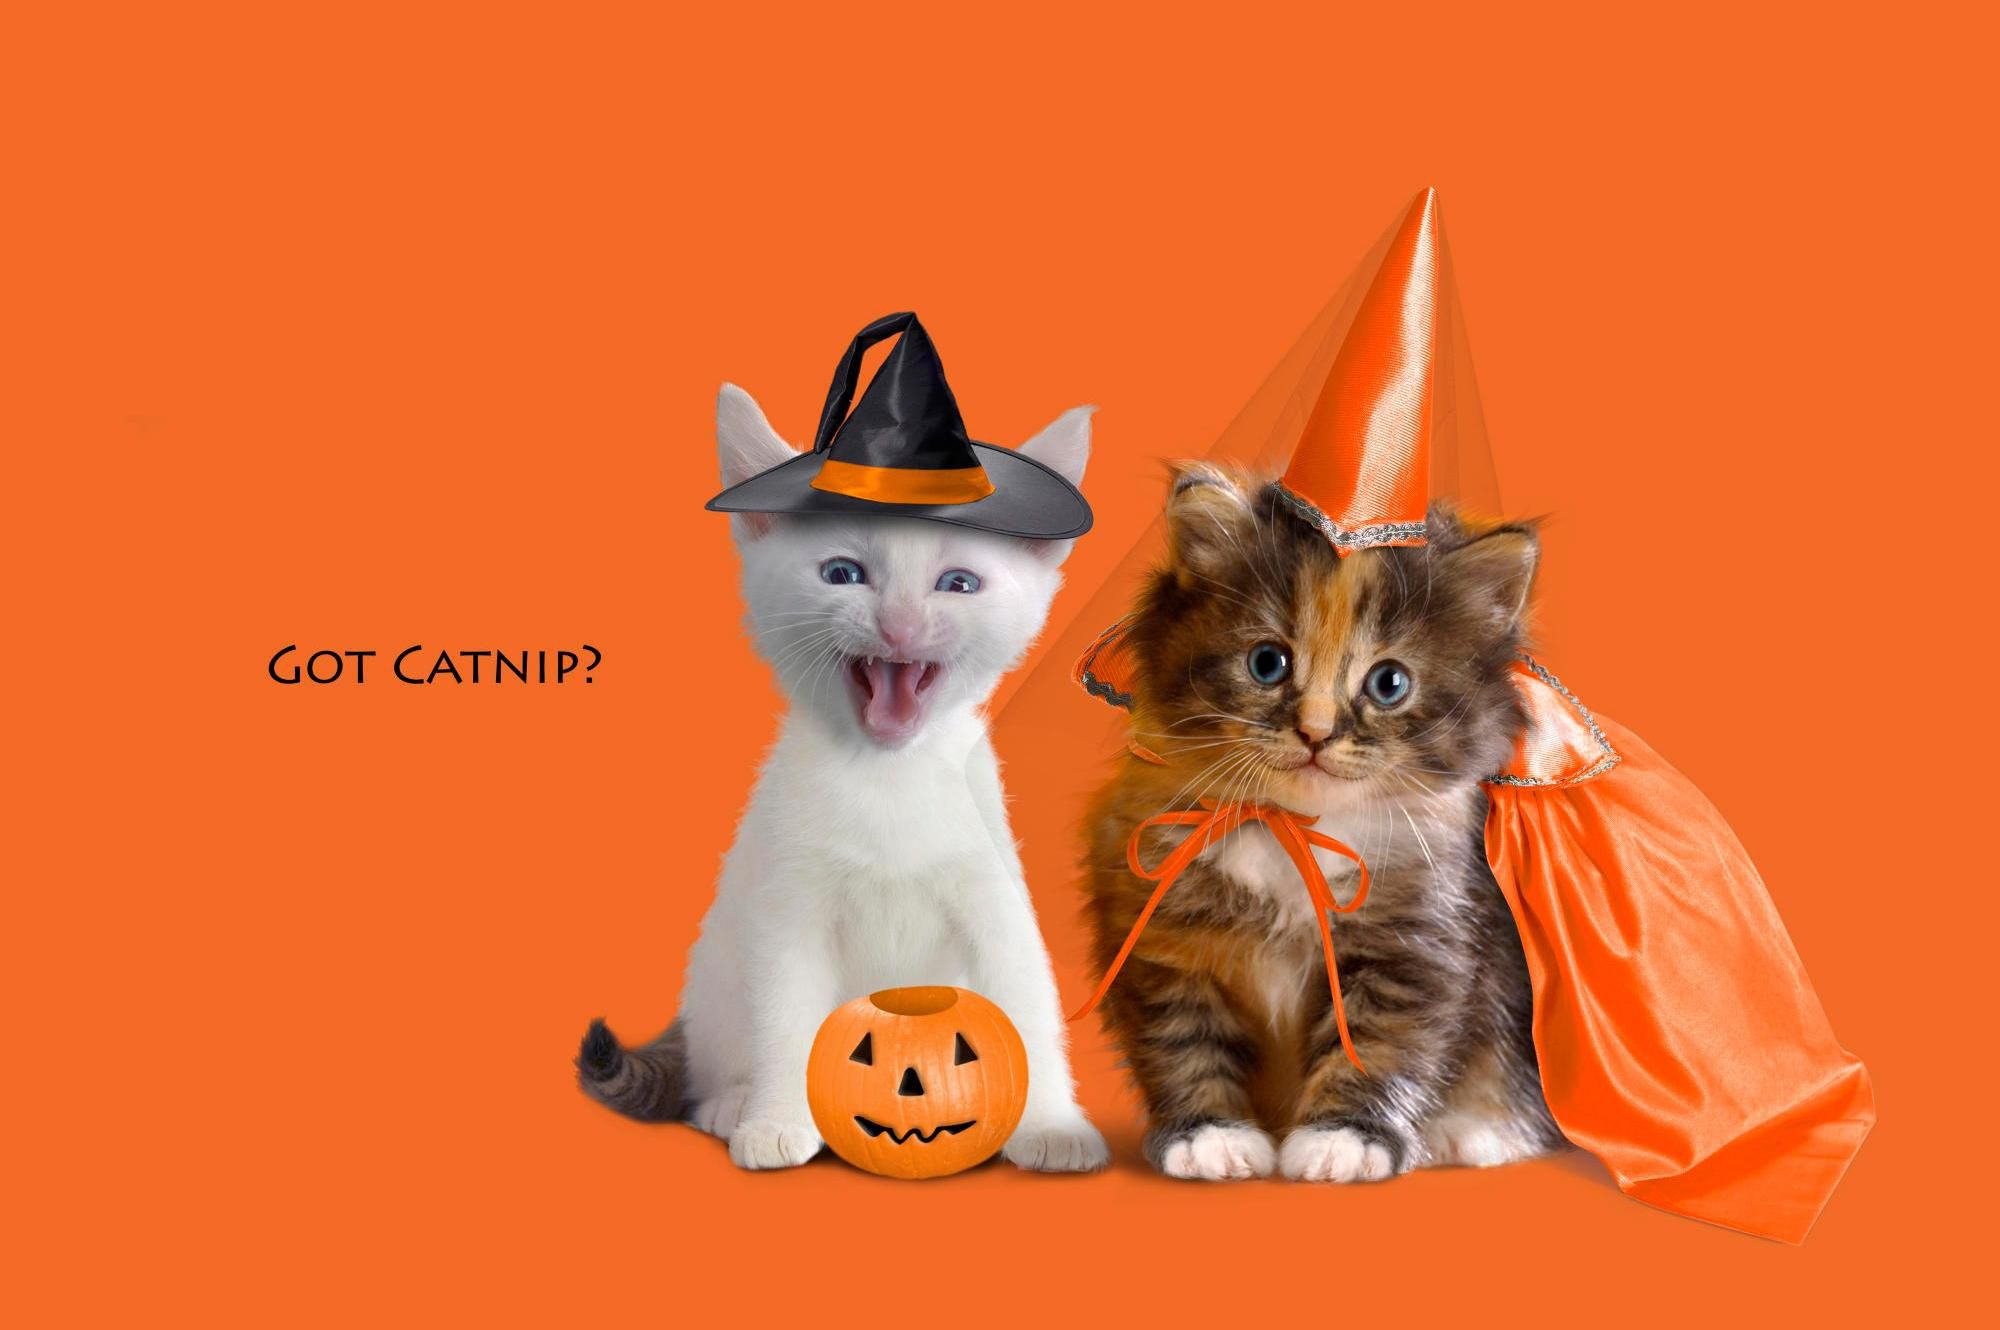 Two kittens dressed up for Halloween with an orange background